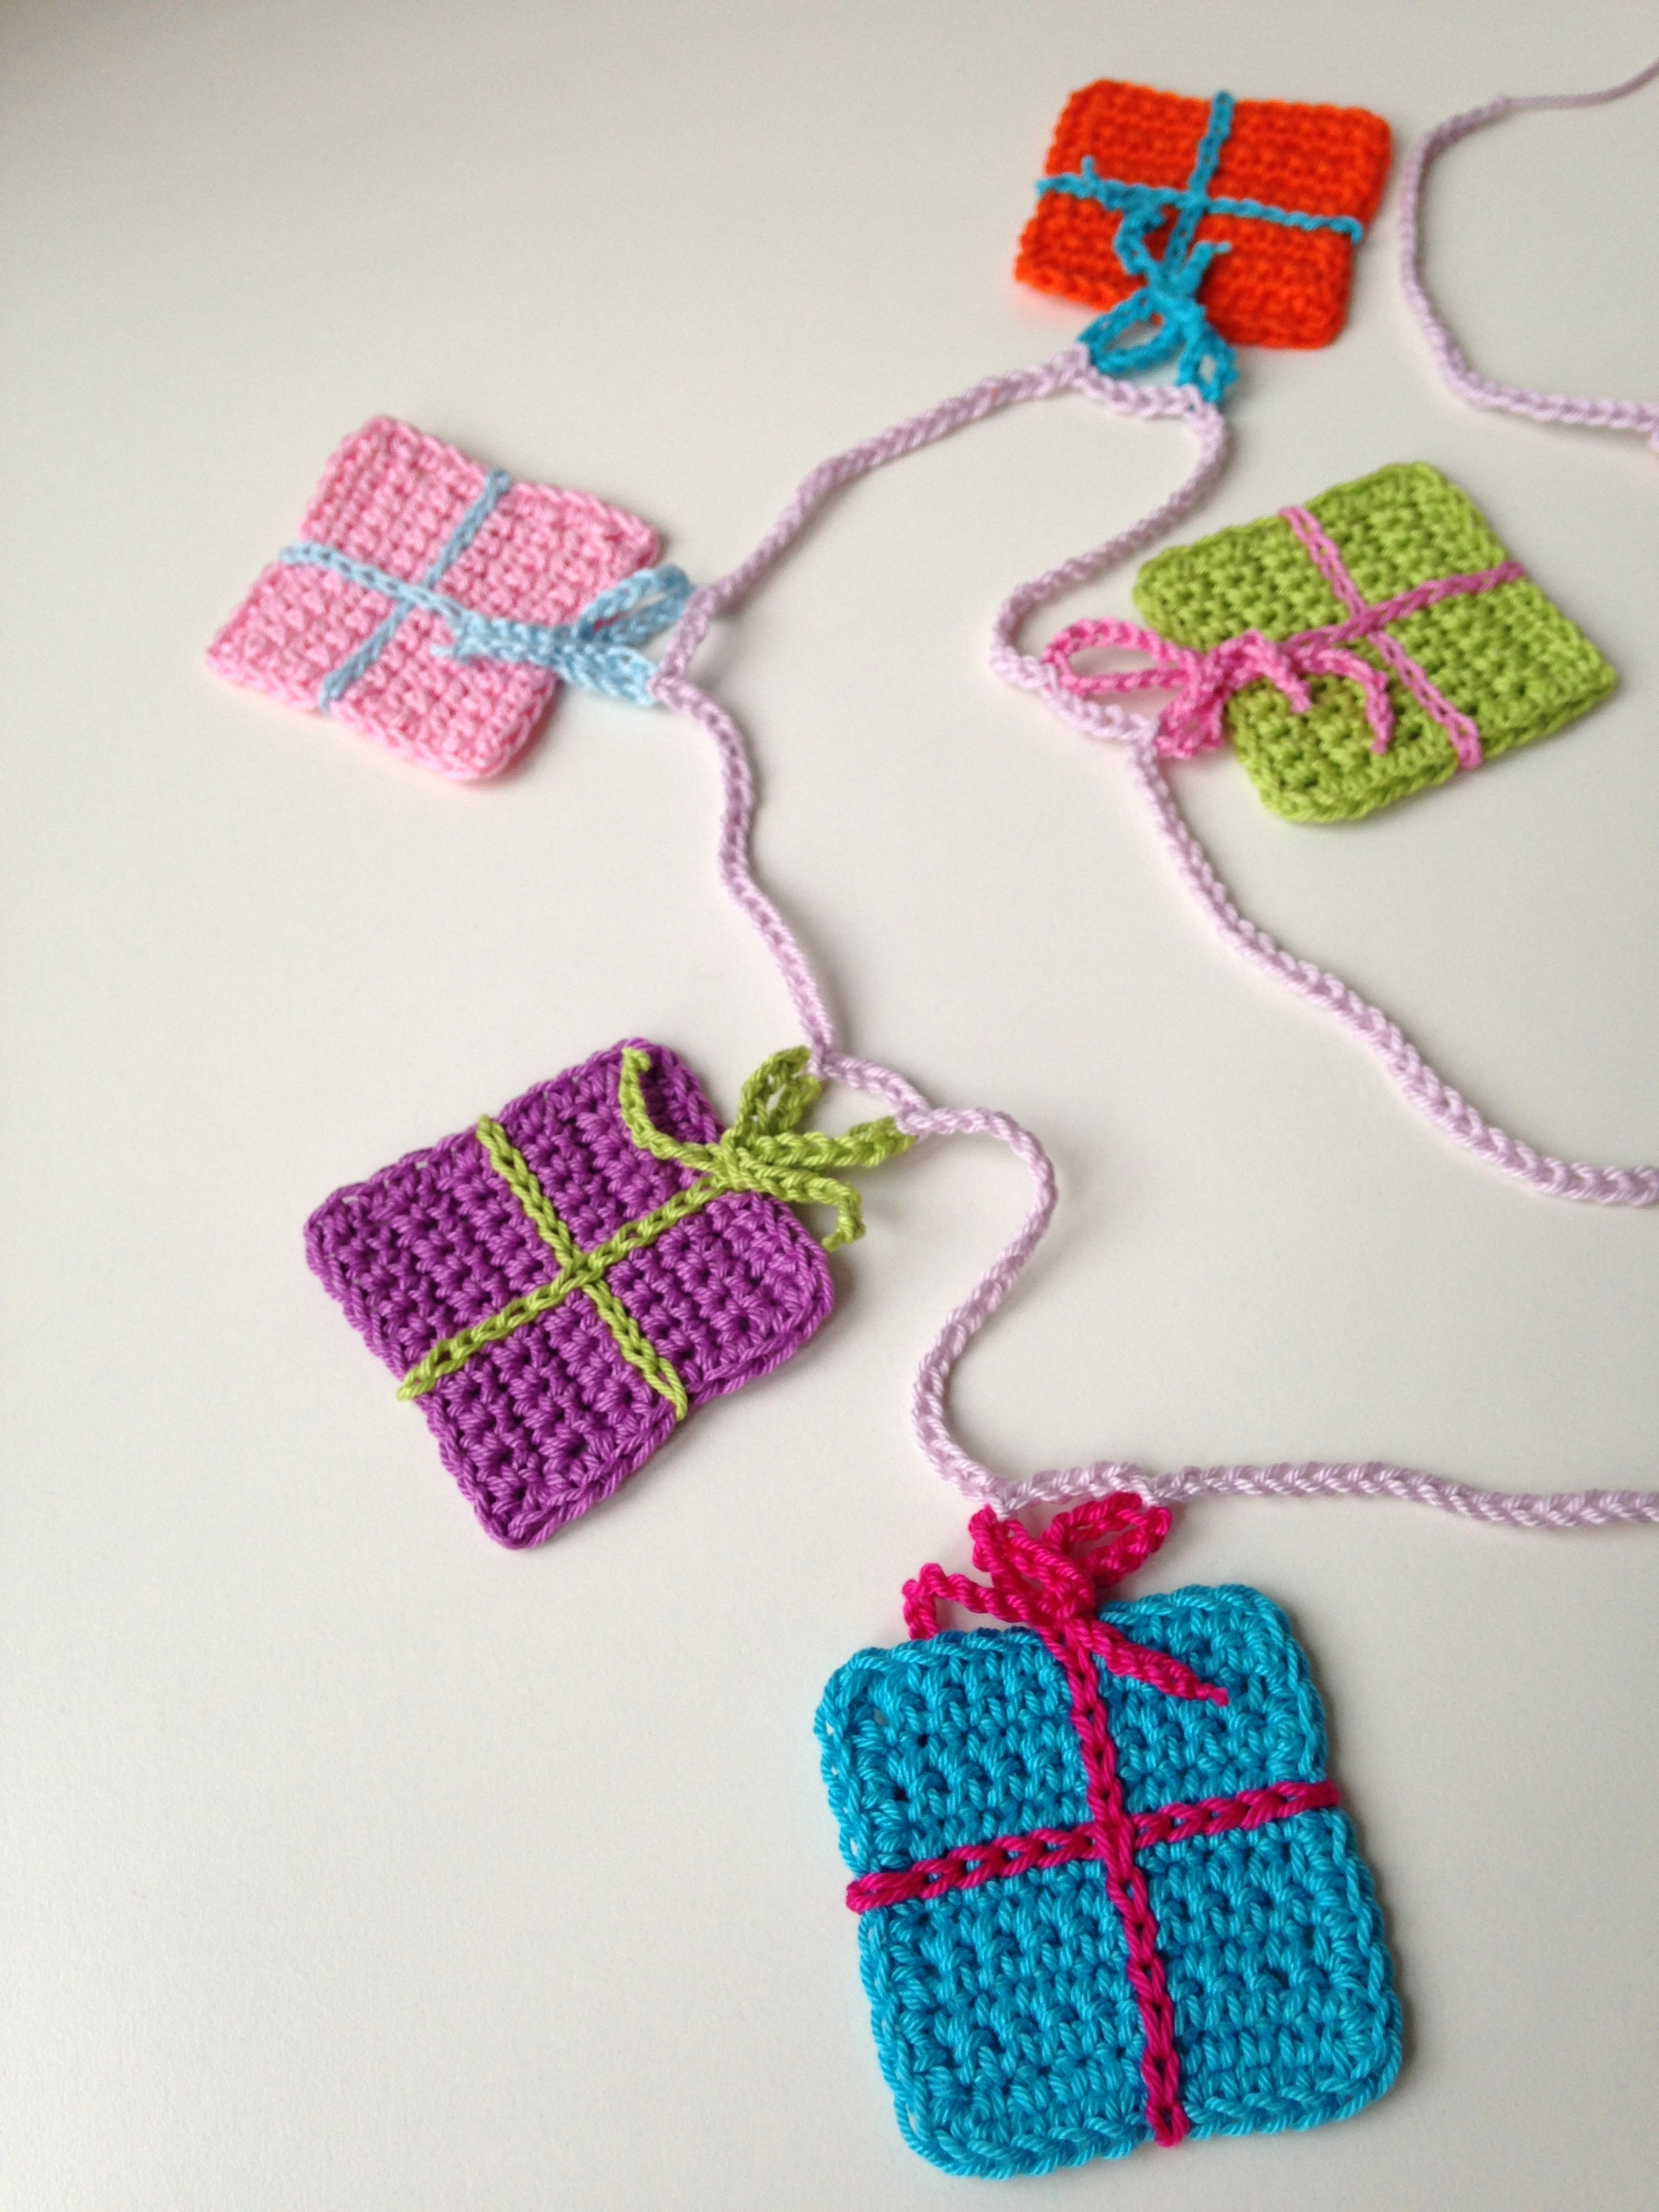 maRRose - CCC: crocheted x-mas presents/gifts